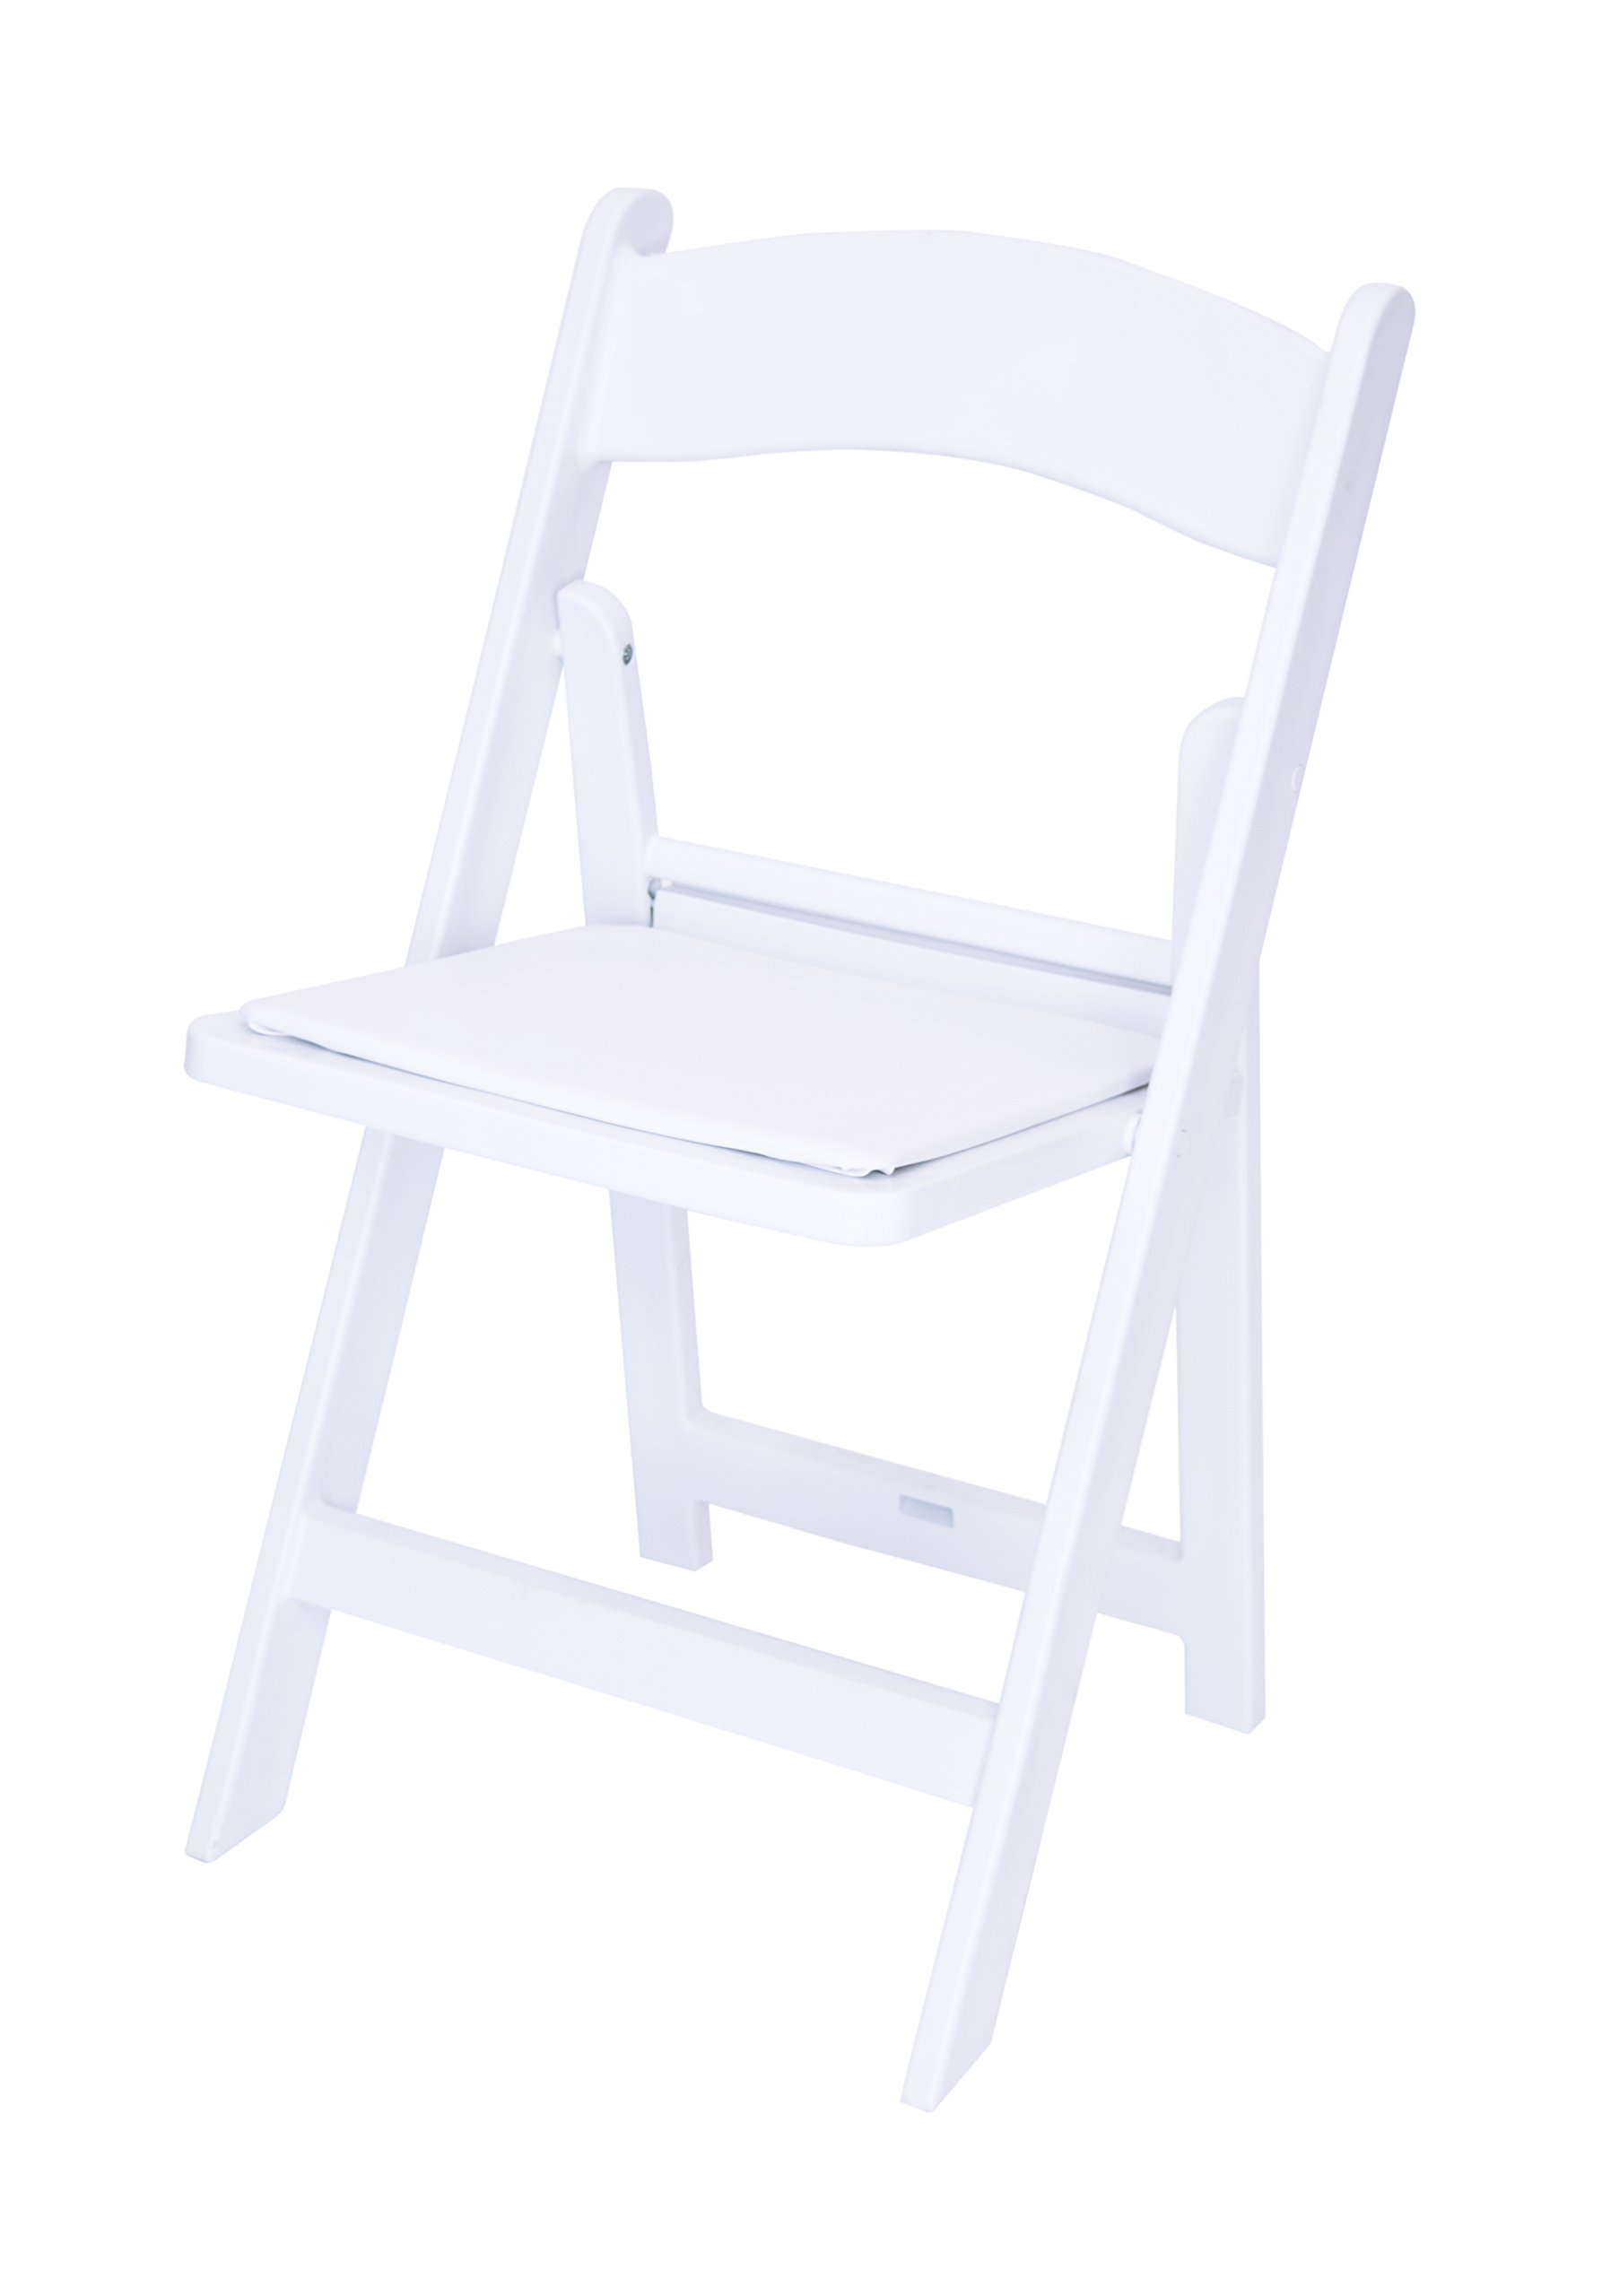 50 Piece White Resin Folding Chair Package - Top Seller